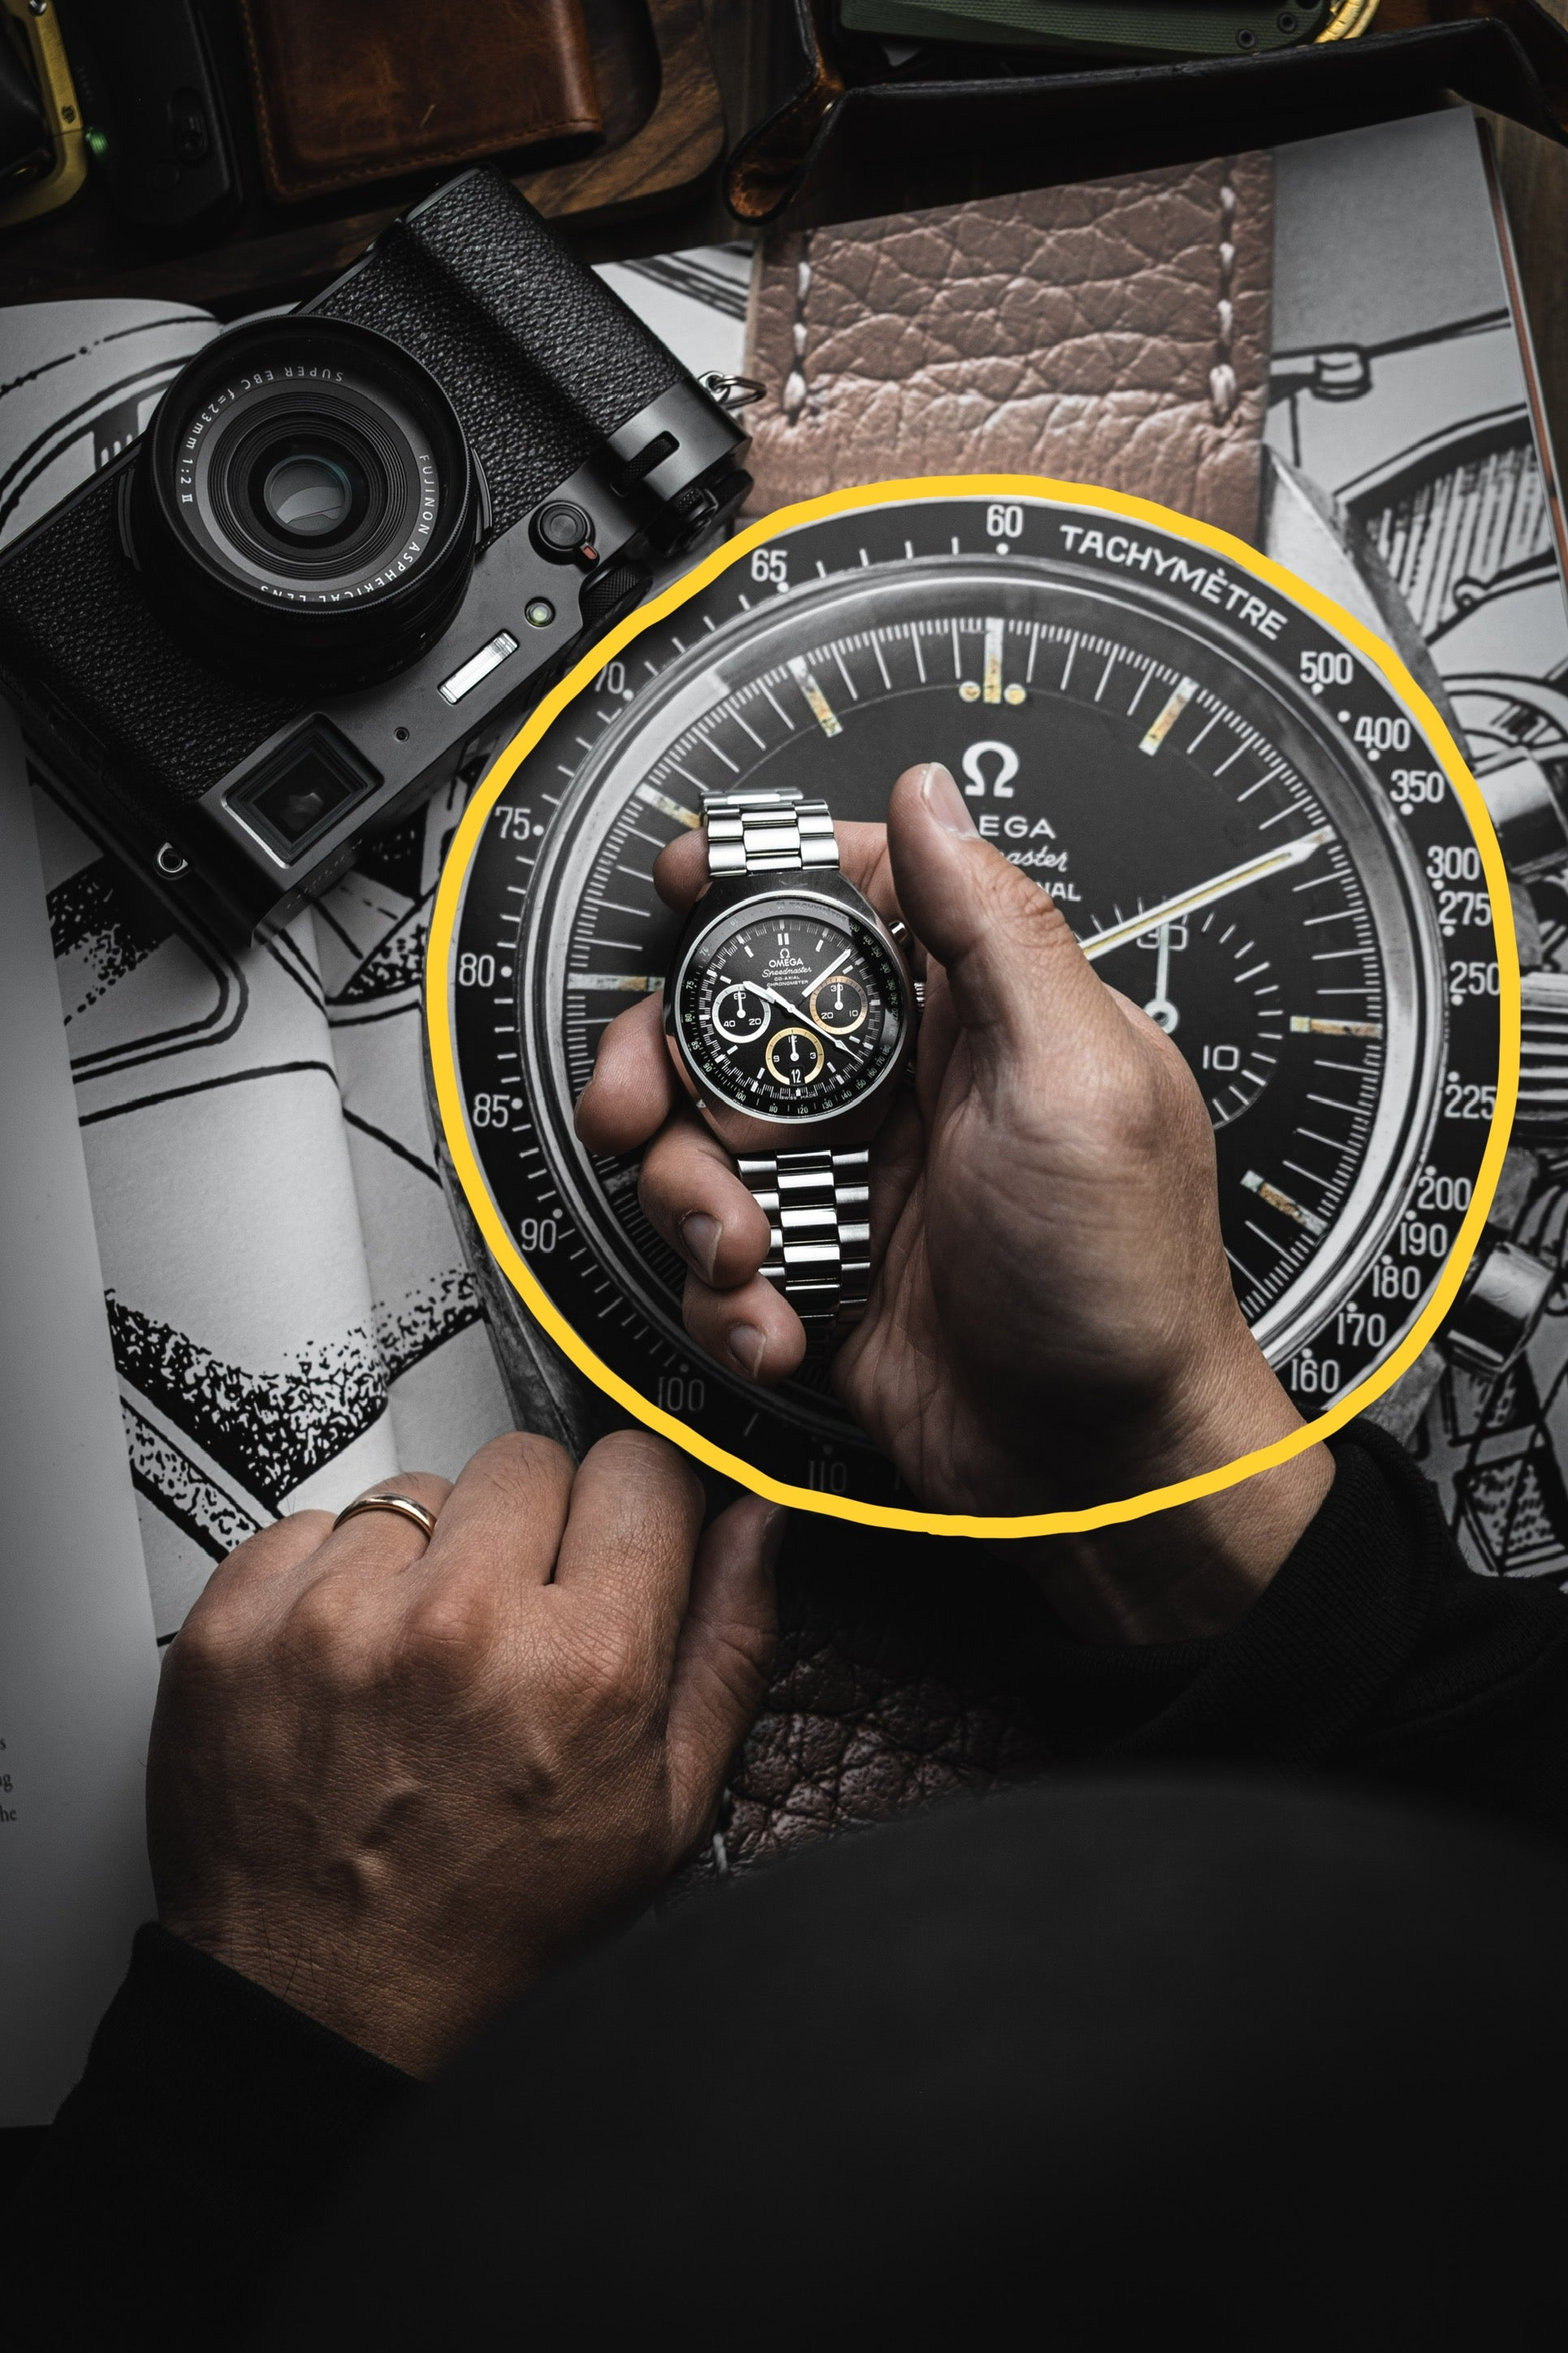 How to use subframing in watch photography